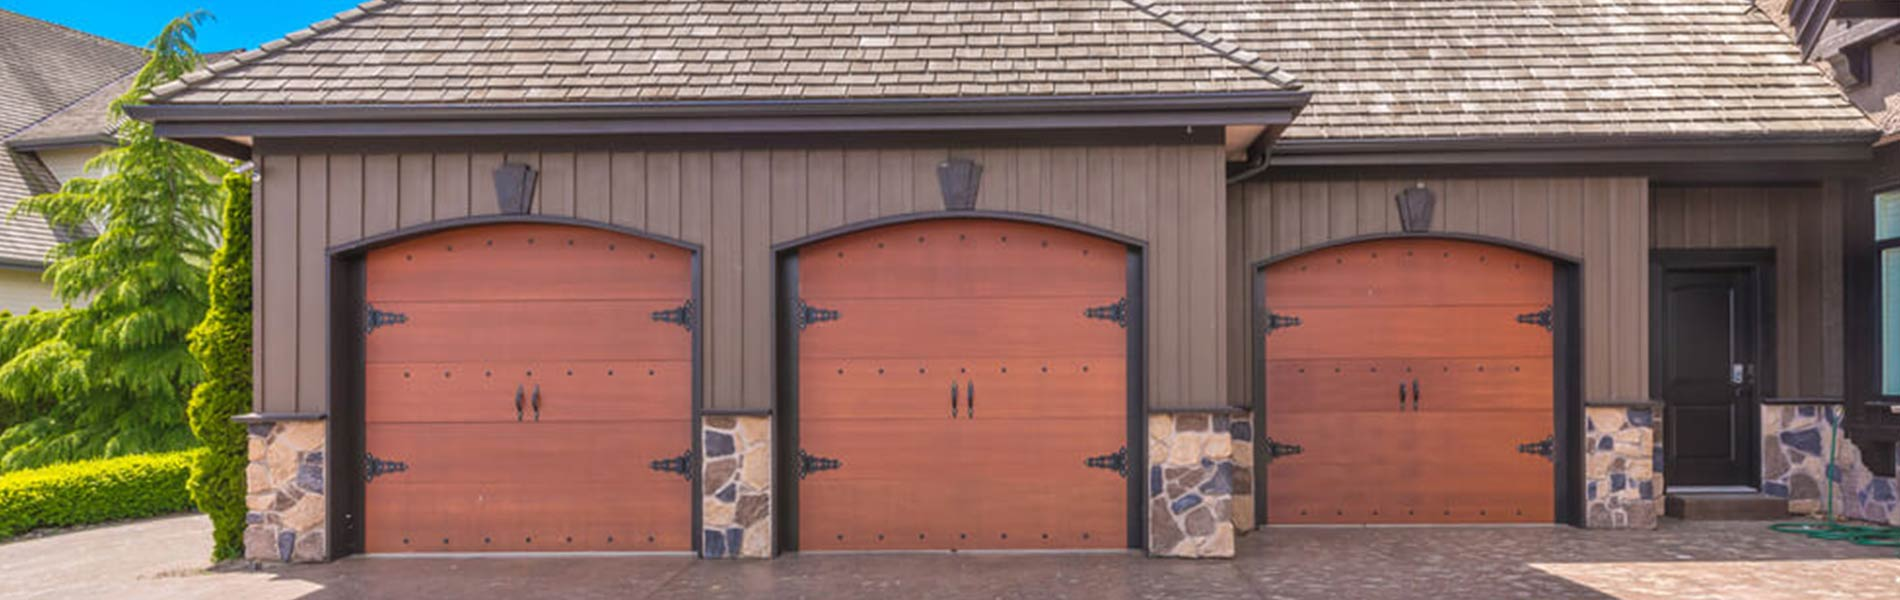 Golden Garage Door Service, Santa Clarita, CA 661-247-1015